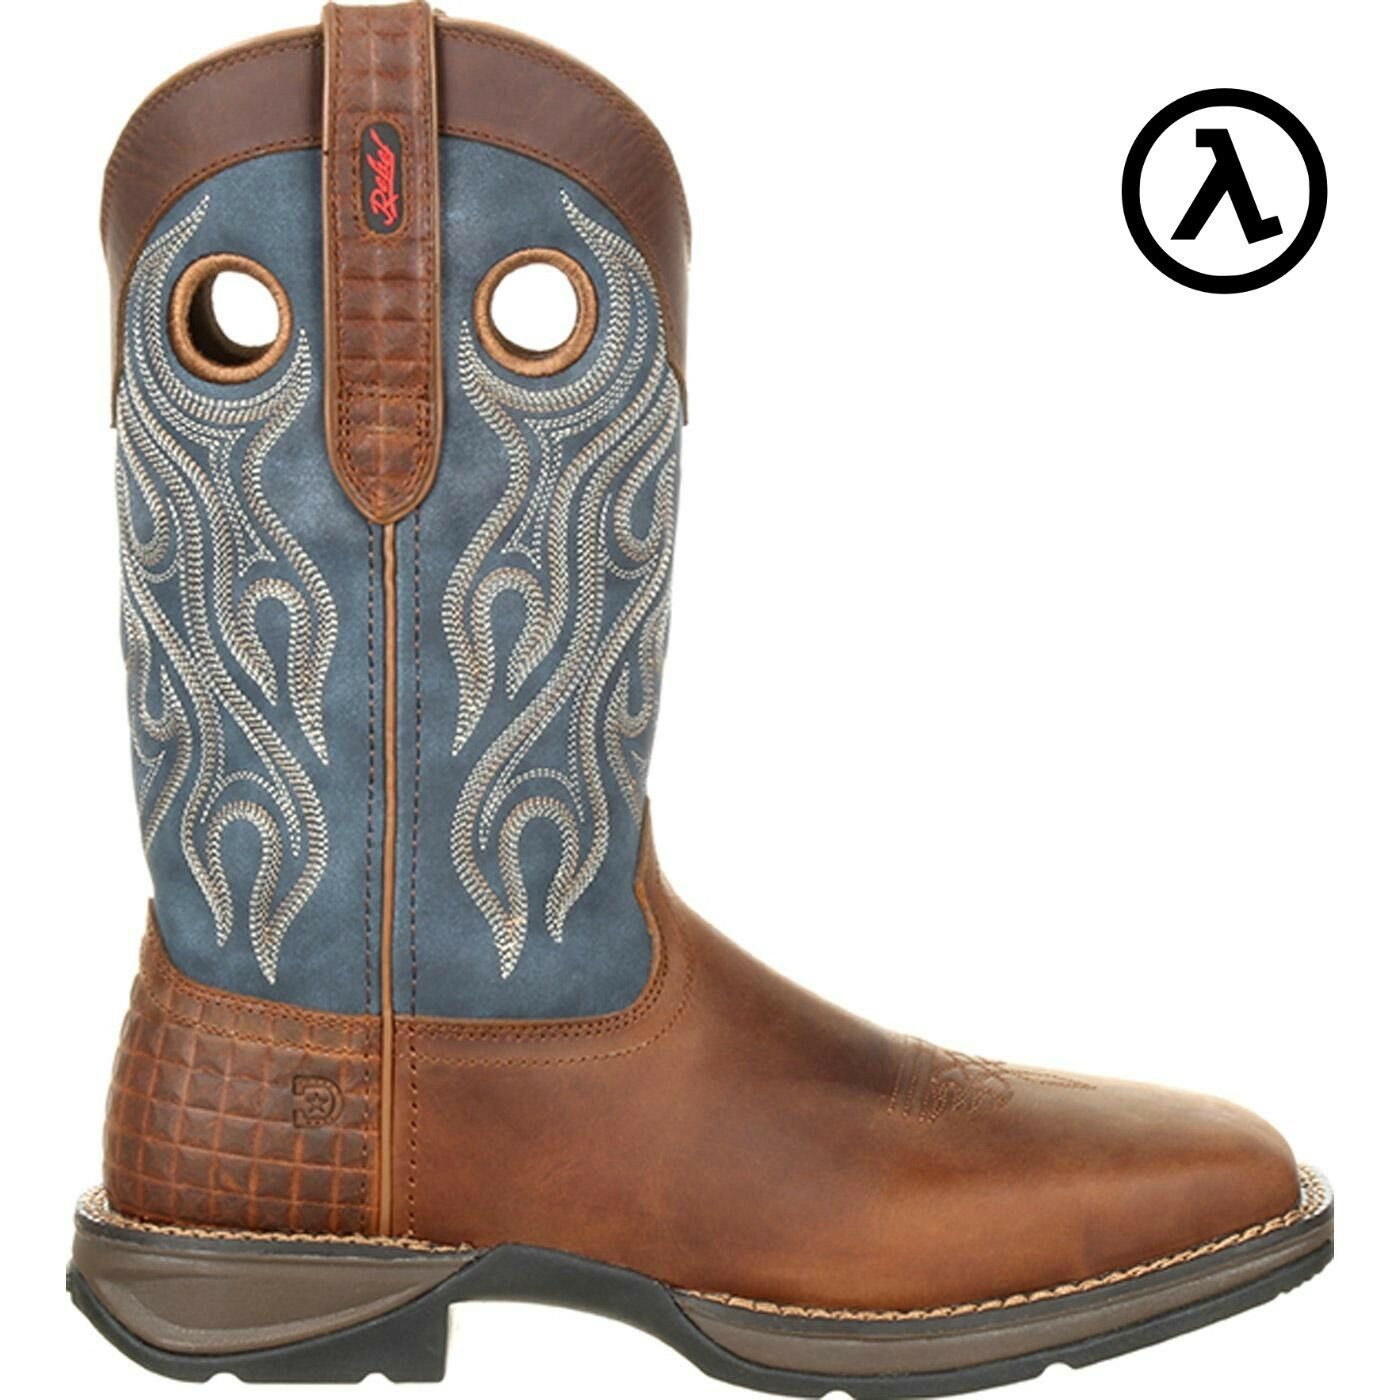 REBEL BY DURANGO STEEL TOE PULL-ON WESTERN BOOTS DDB0134  ALL SIZES - NEW